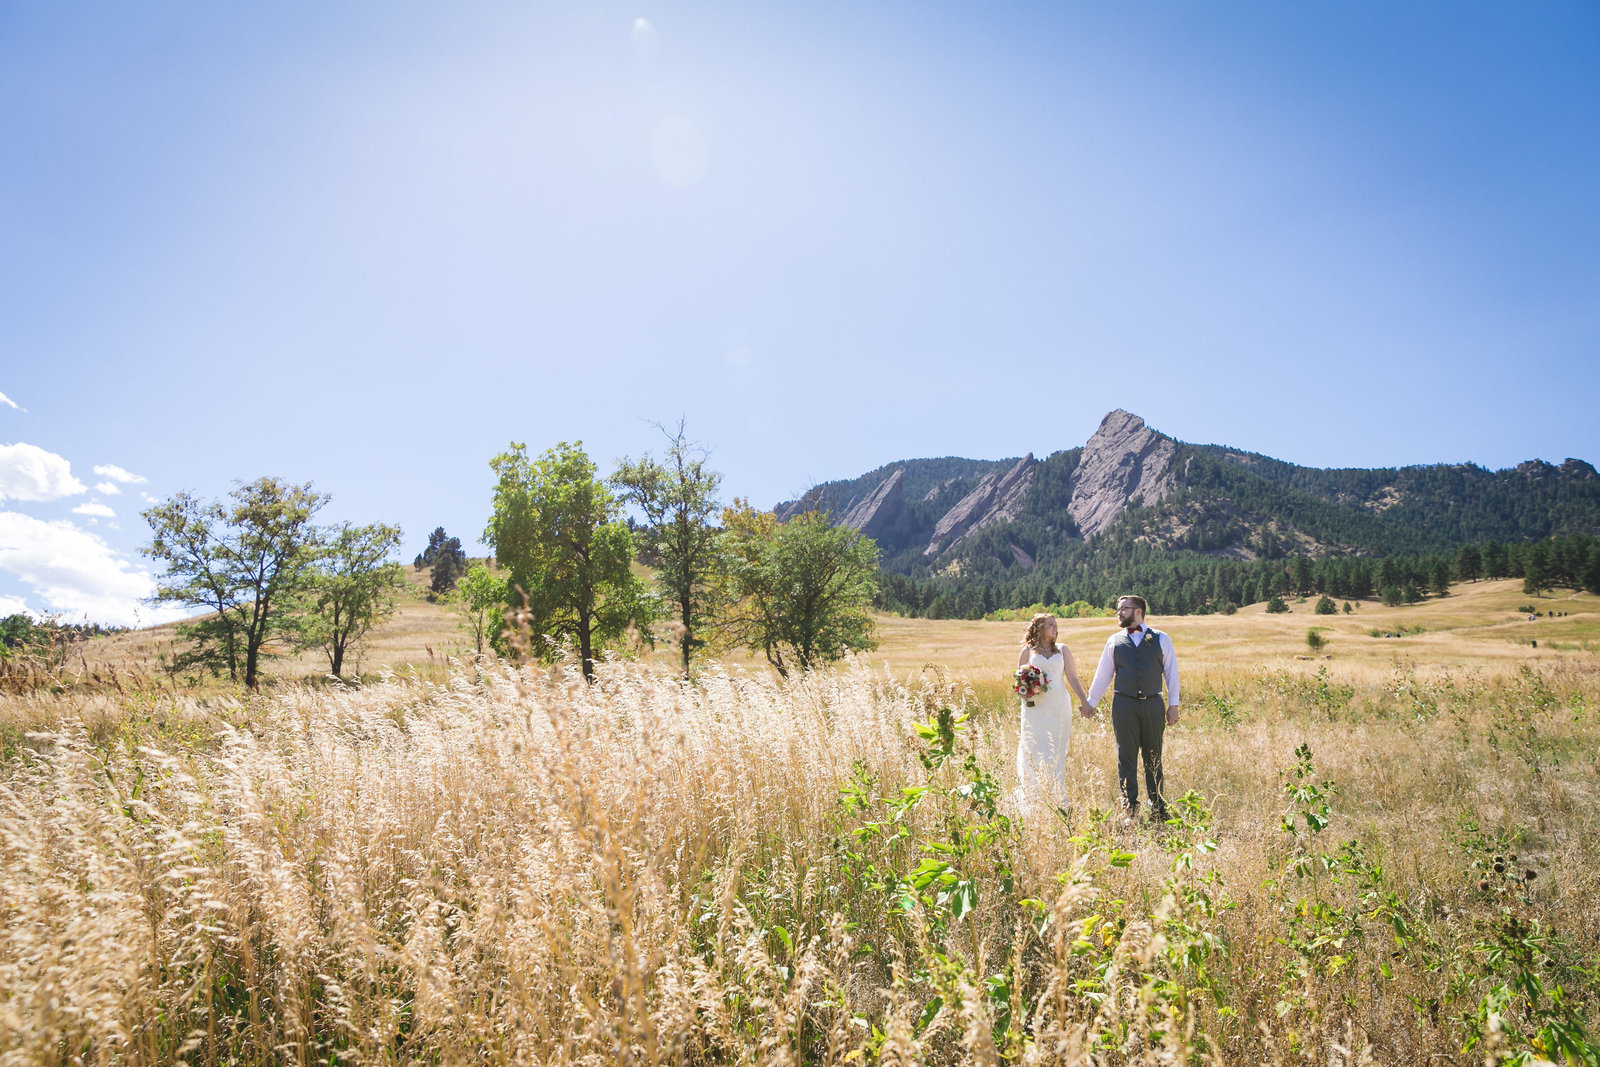 Zach-&-Lizzie's-Colorado-Outdoor-Wedding-Photos-by-Amenson-Studio-0114